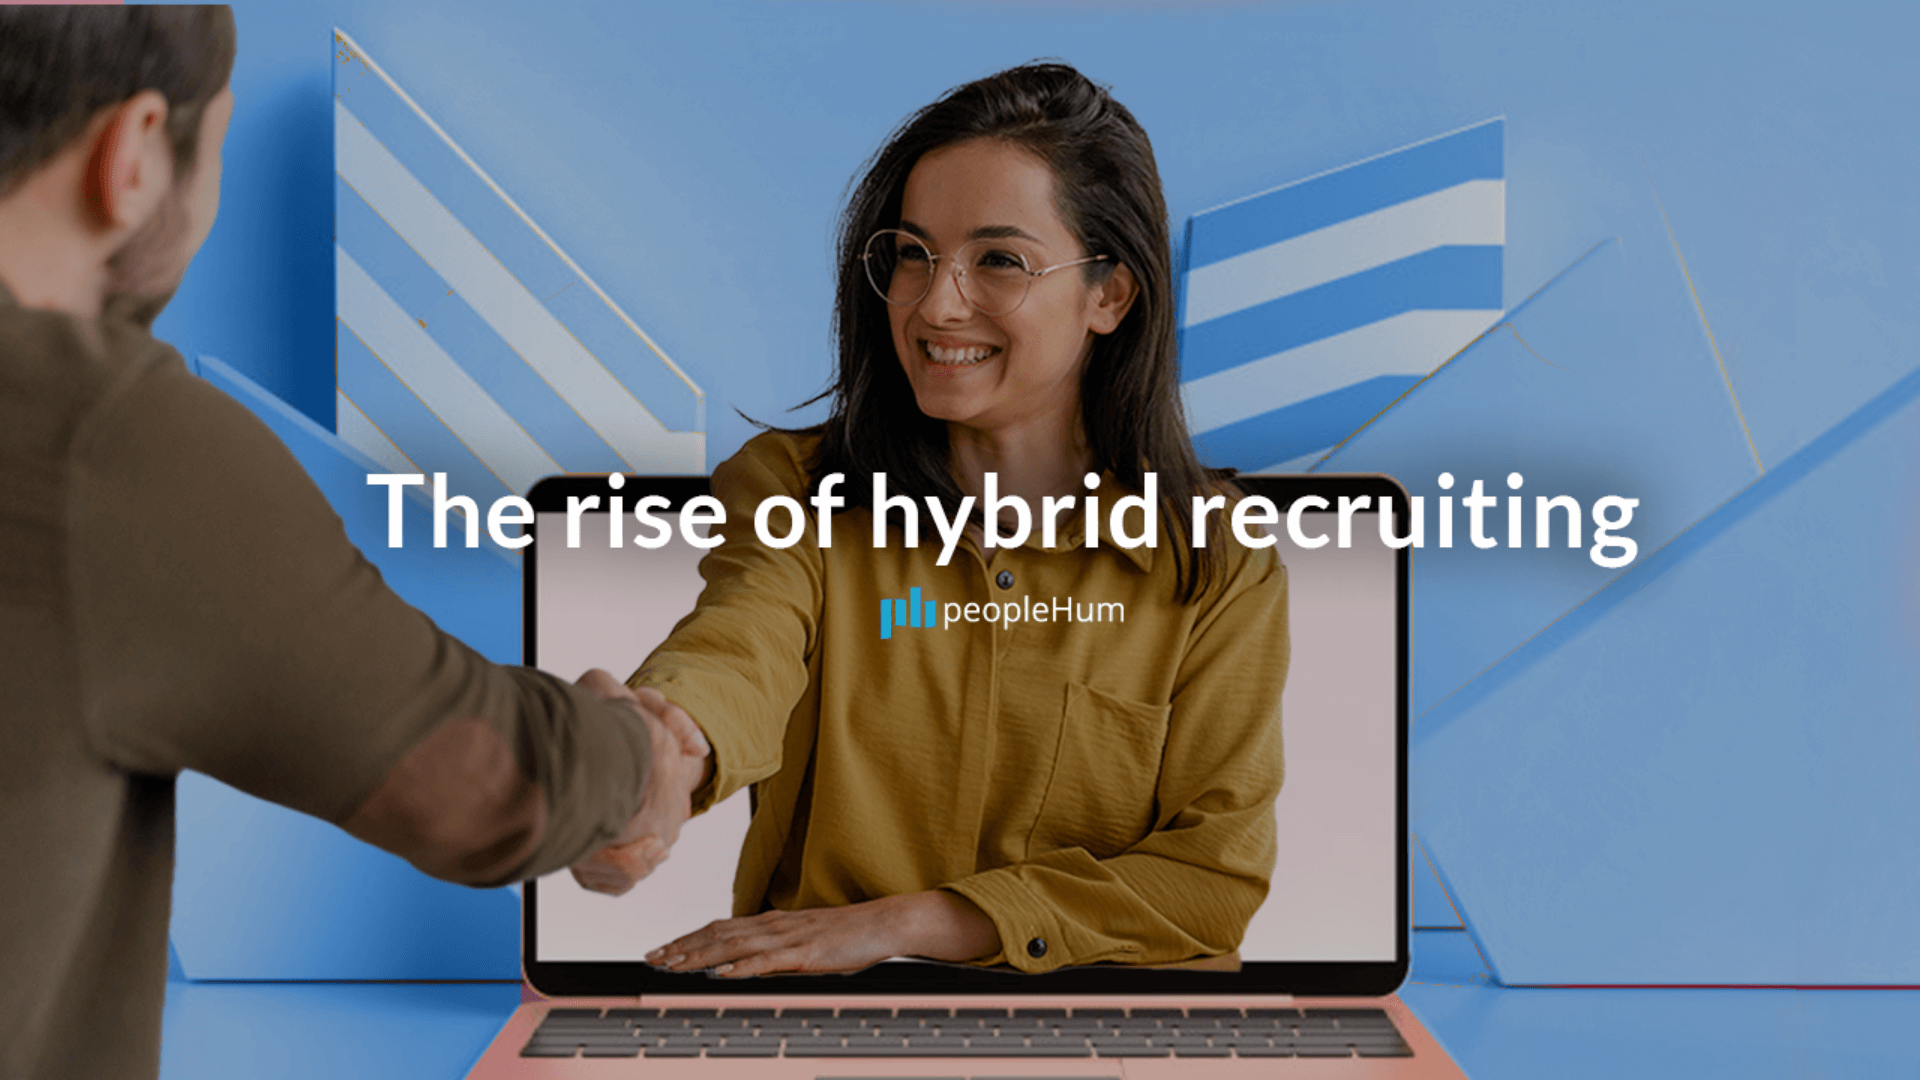 The rise of hybrid recruiting